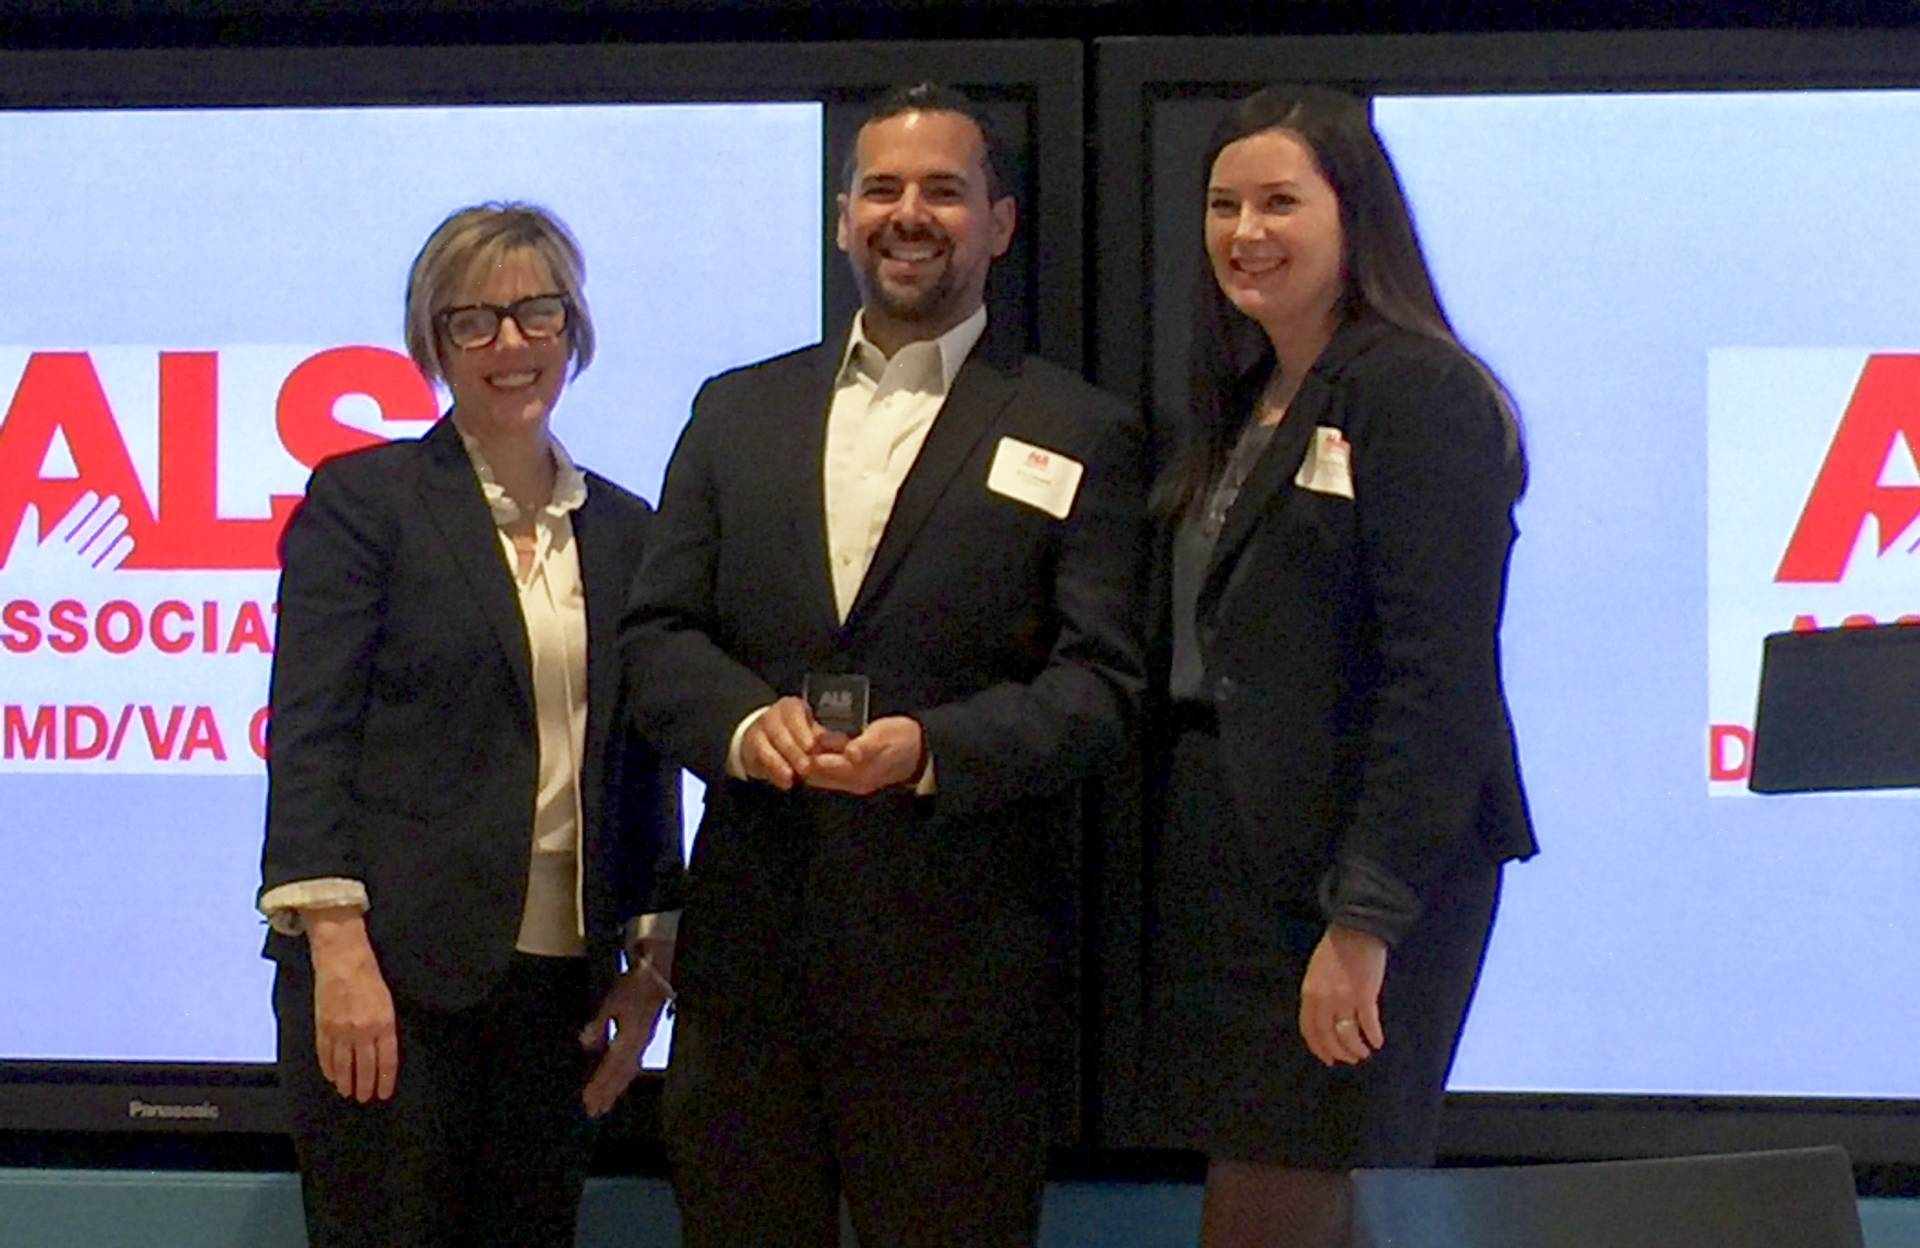 Lifematters Awarded by ALS Association